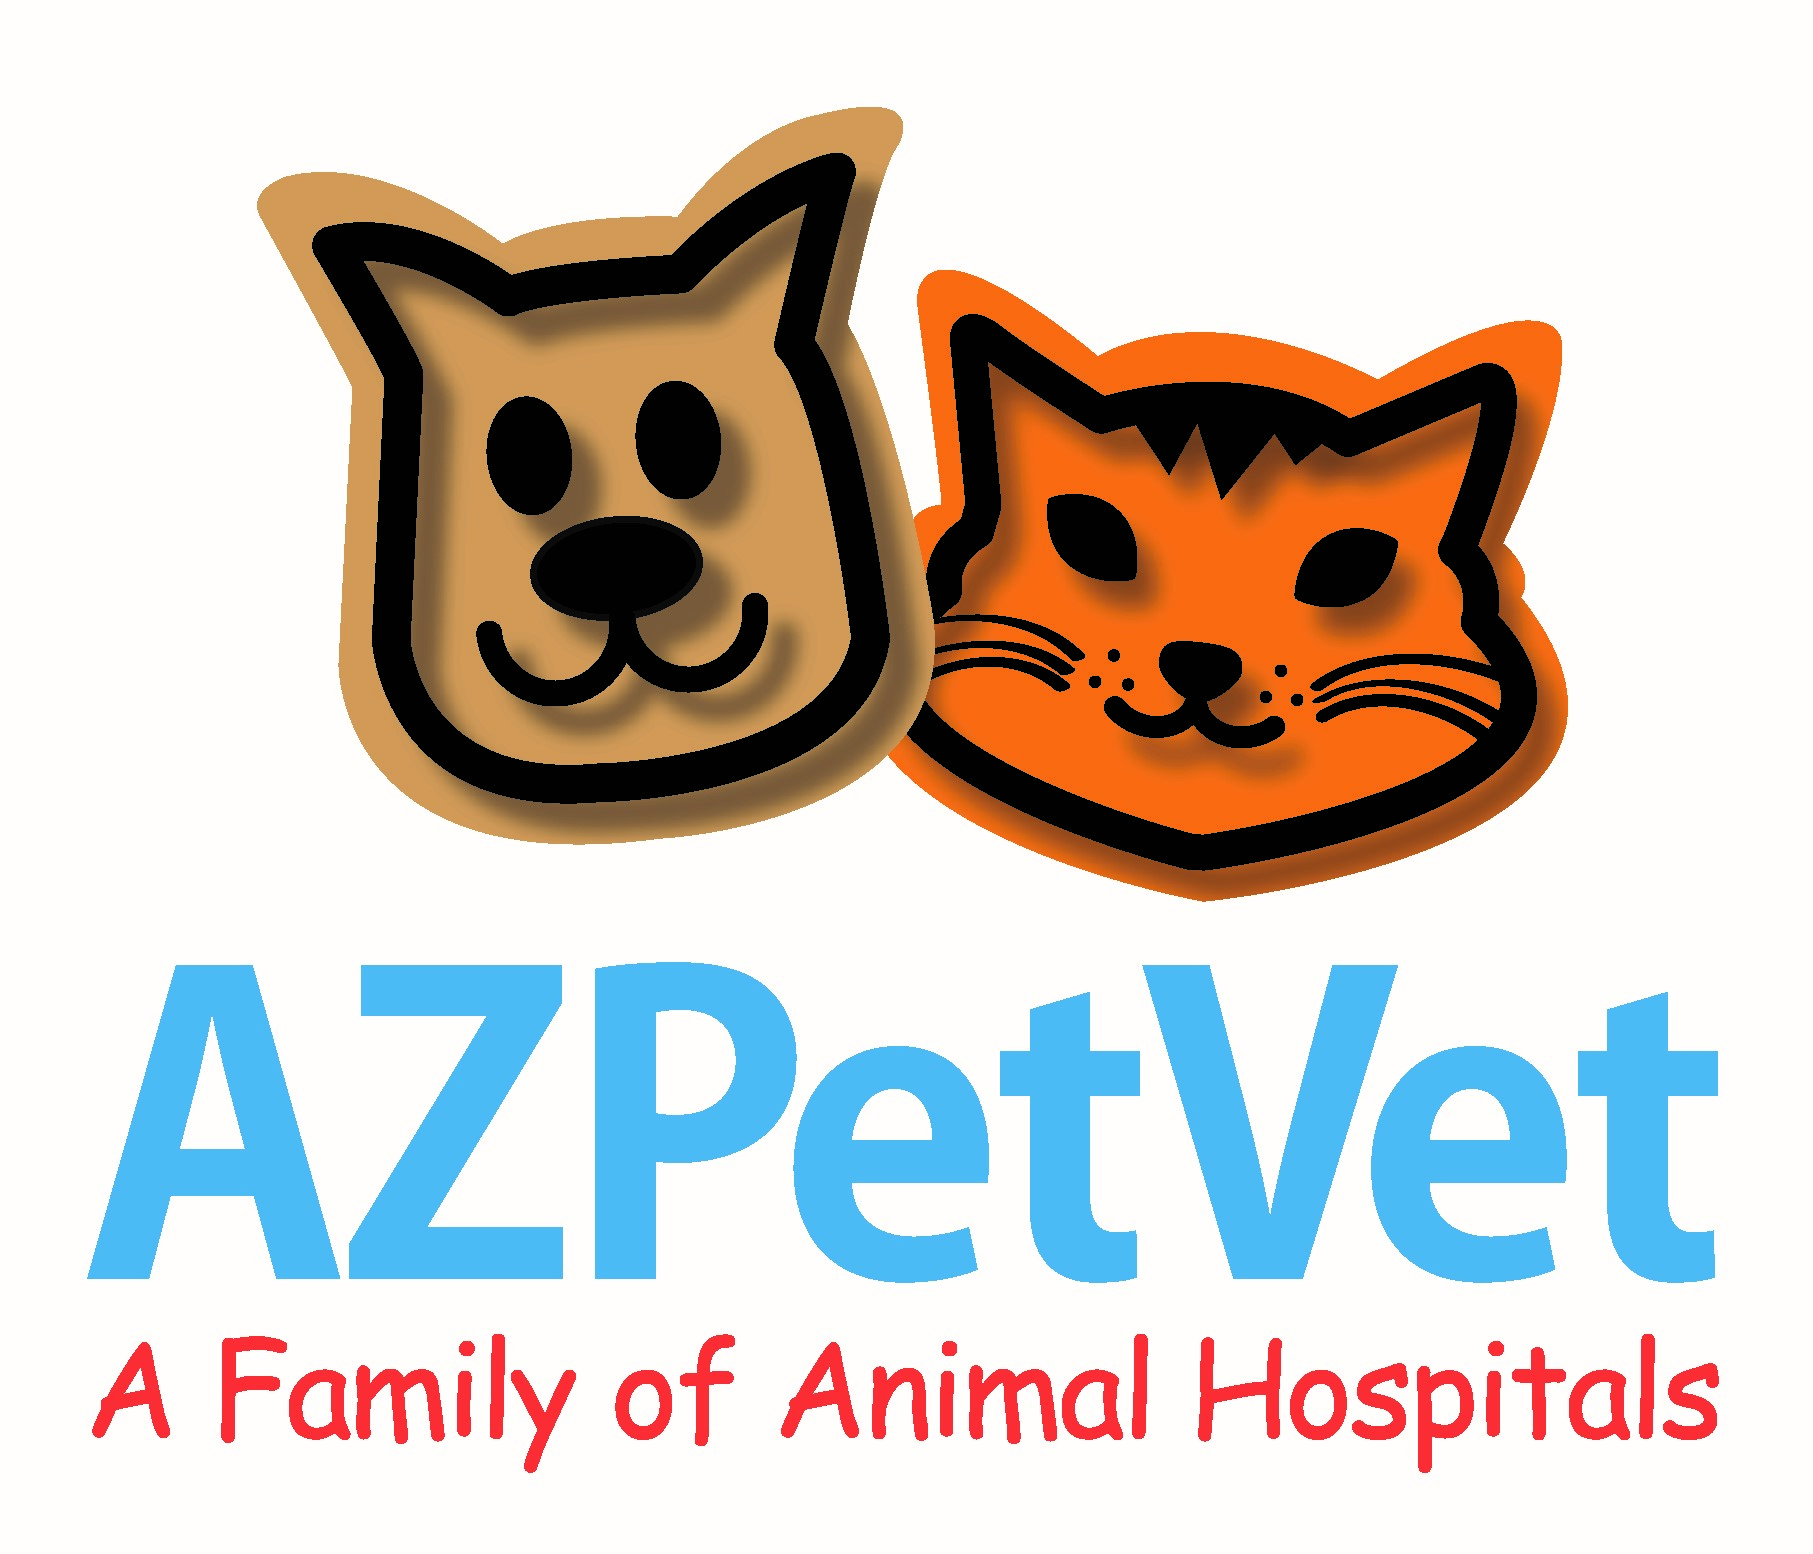 AZPetVet - click to visit their website